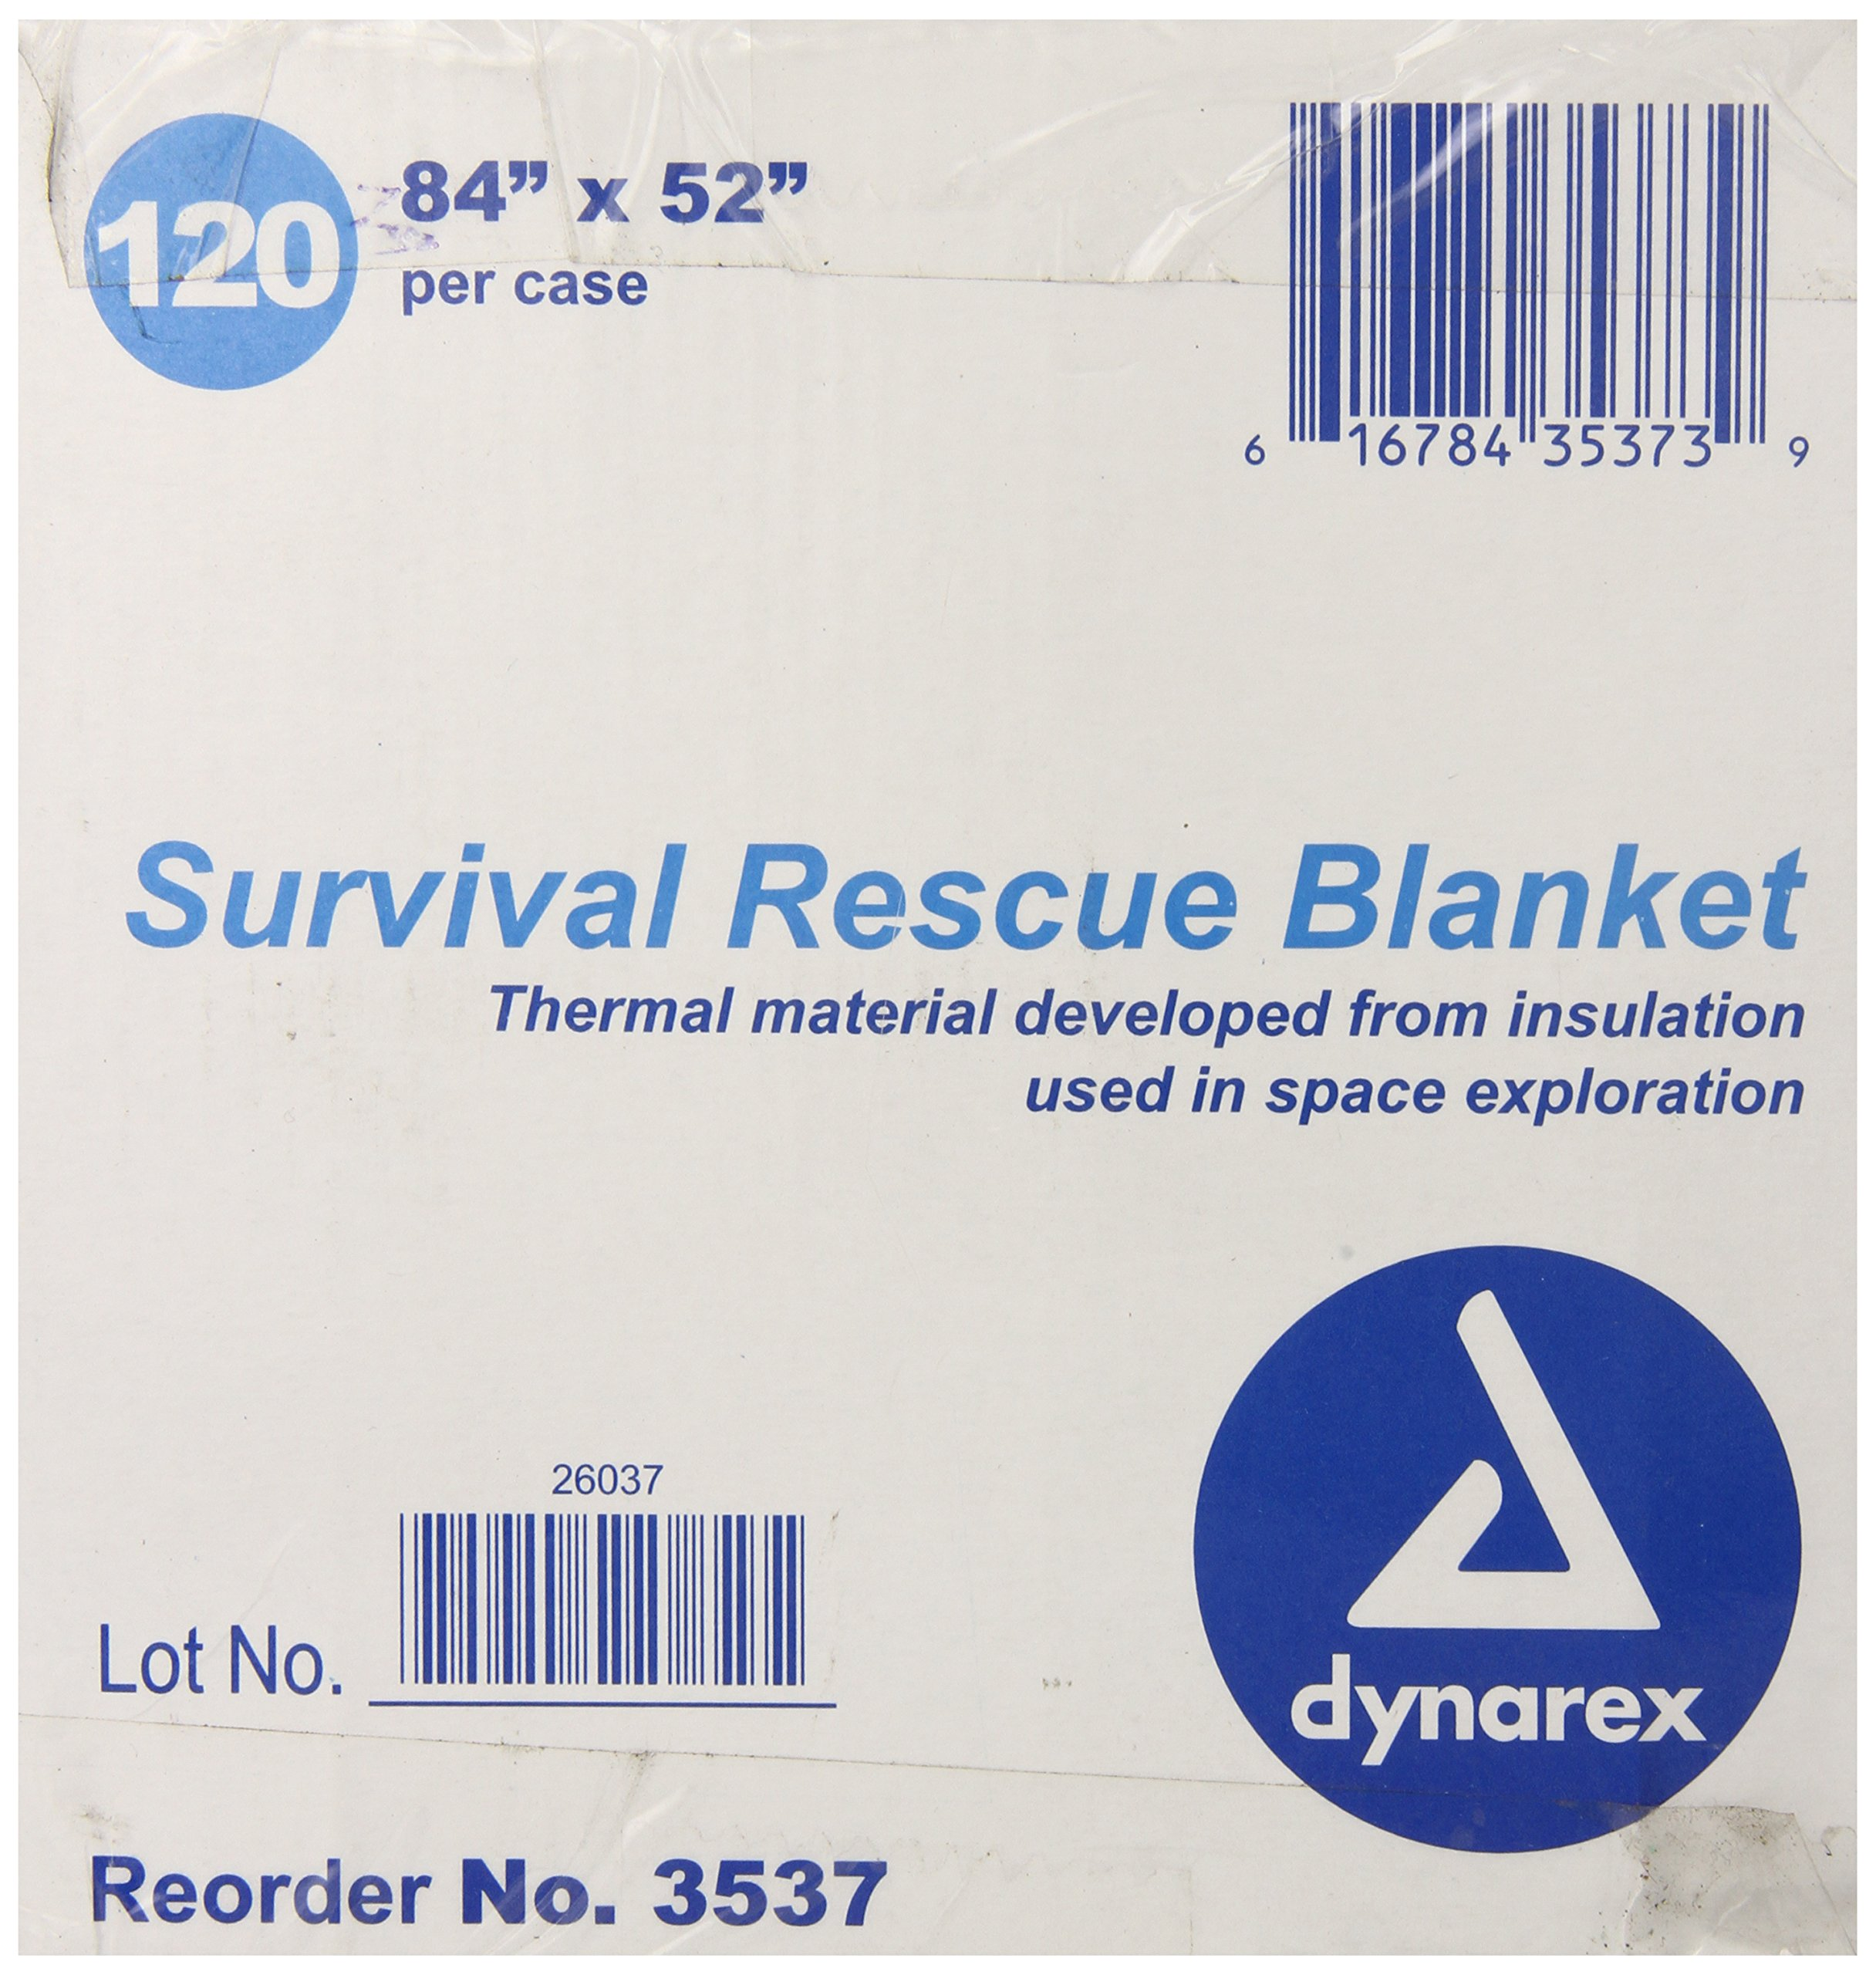 Dynarex Survival Rescue Blanket, 120 Count, 84 Inch x 52 Inch, (Pack of 120) by Dynarex (Image #1)